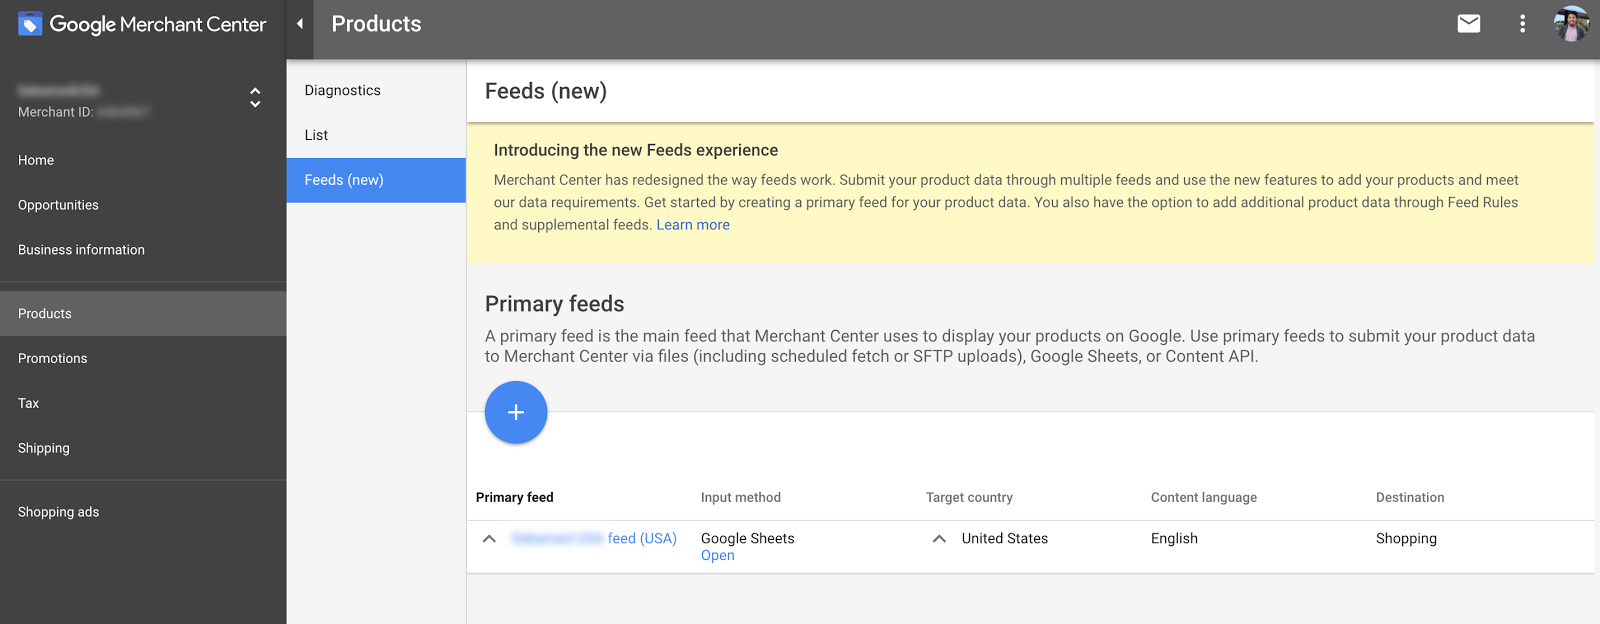 You now have the option to add primary feeds and supplemental feeds.